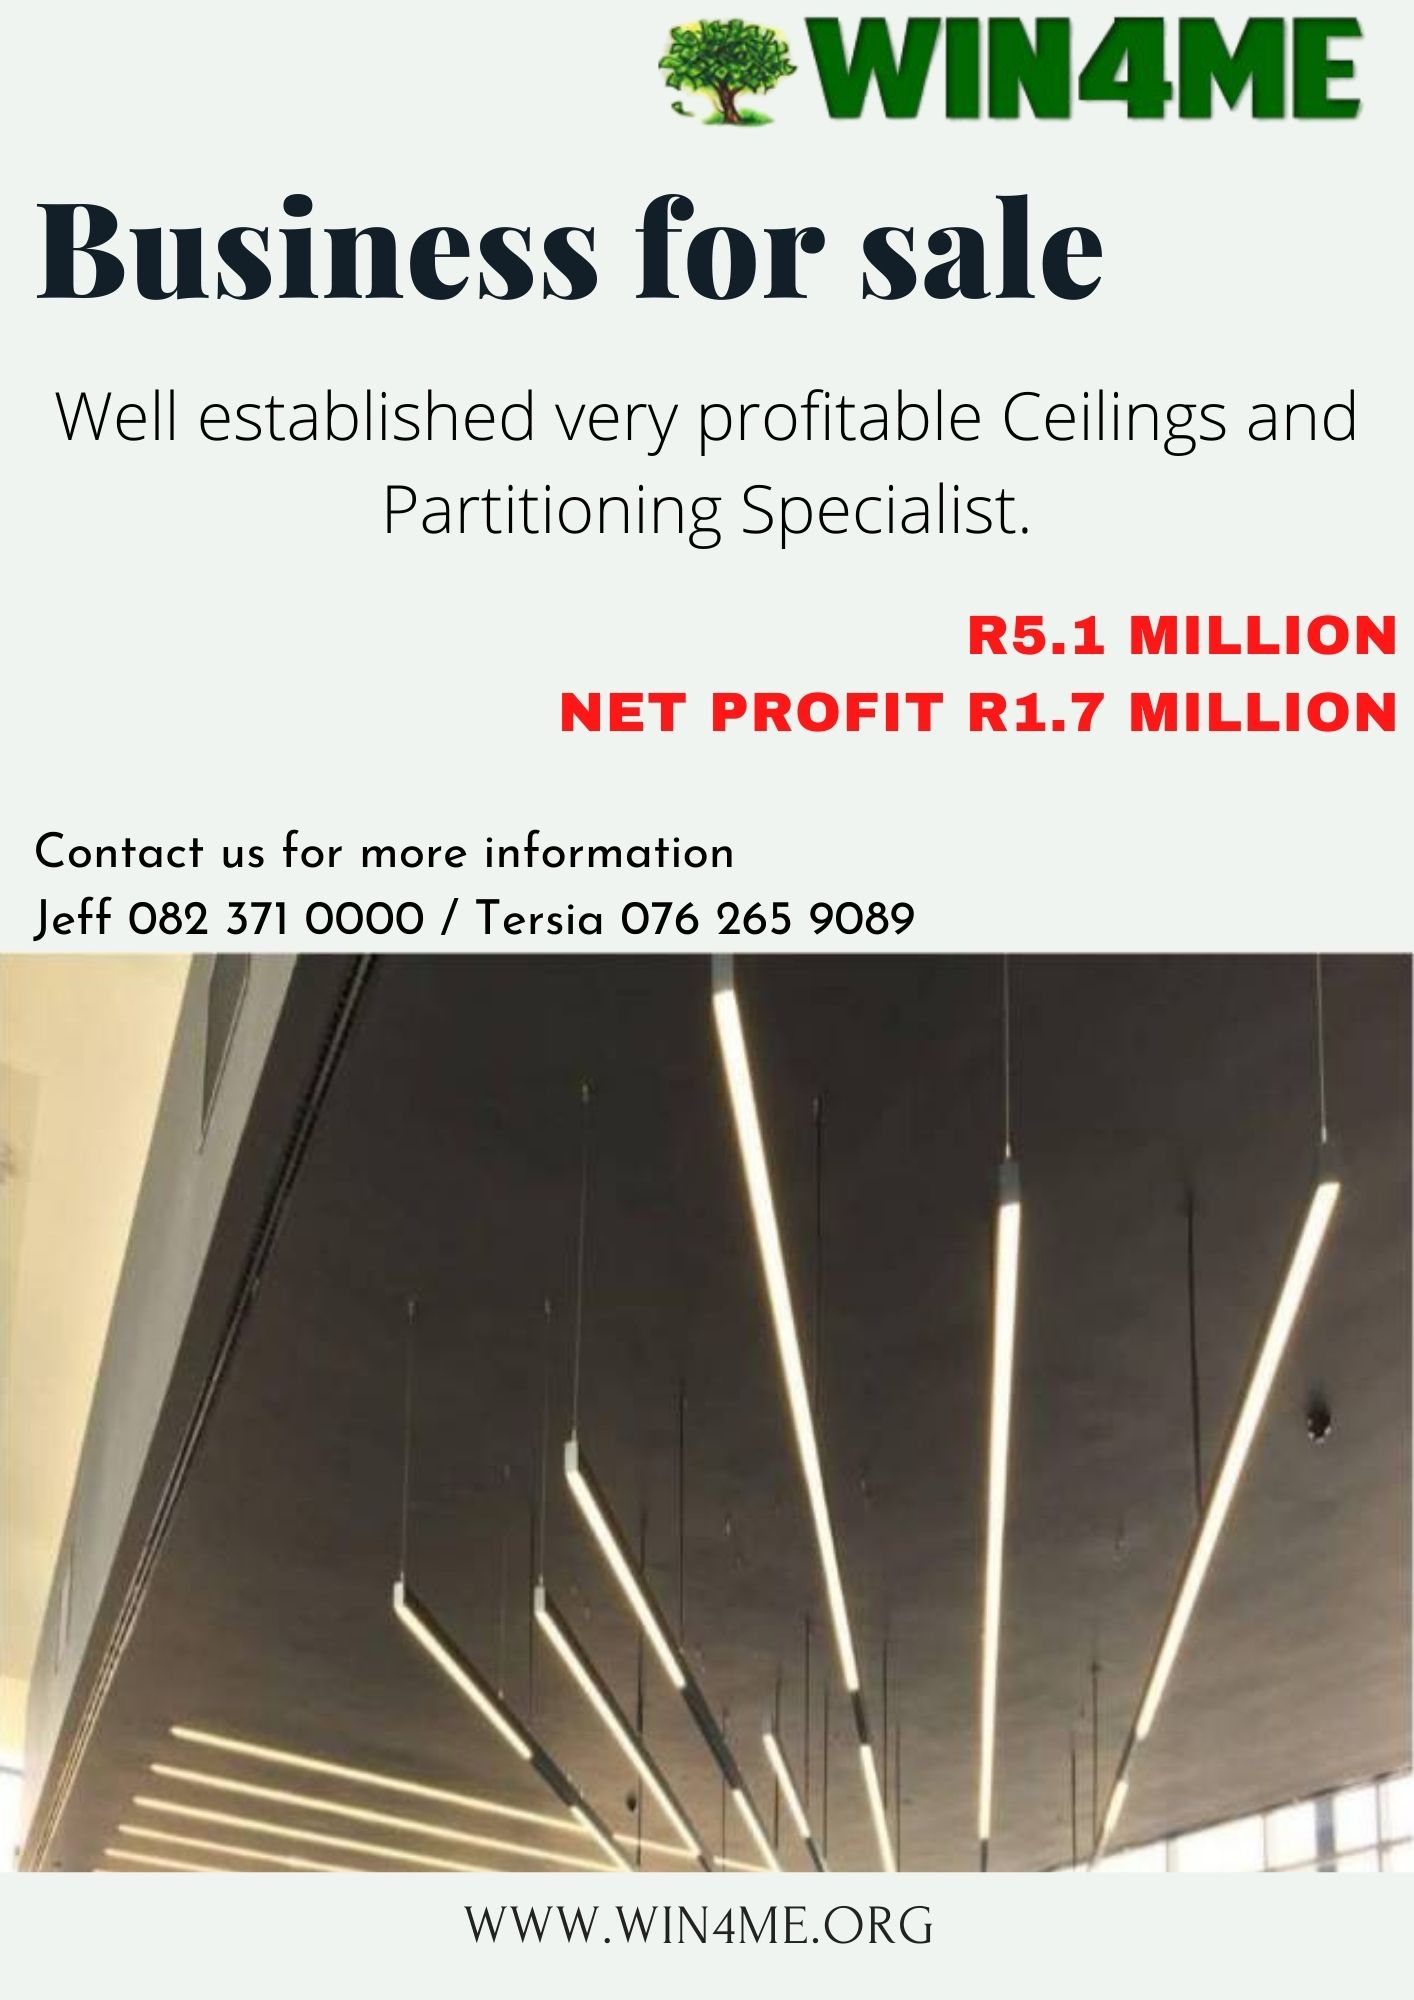 Ceilings and Partitioning Specialist  Business for sale